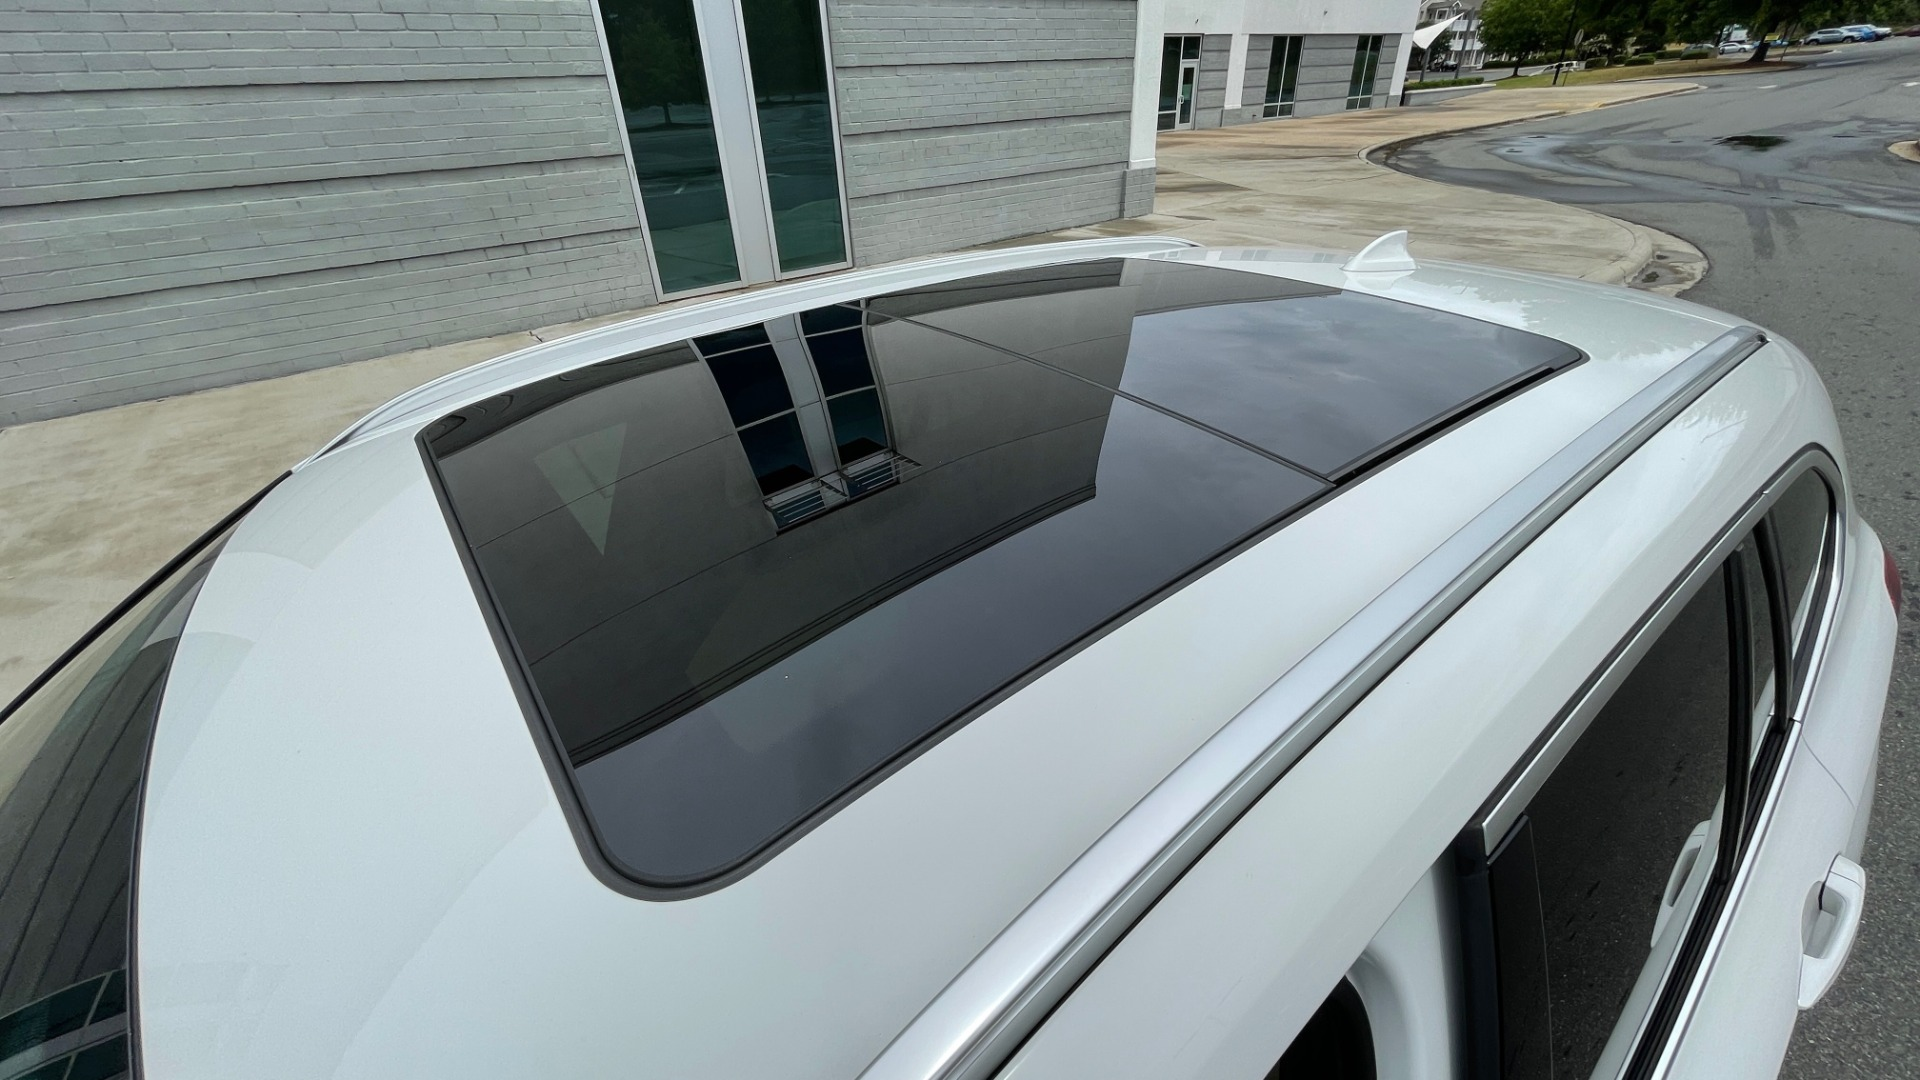 Used 2018 BMW X1 XDRIVE28I / CONV PKG / PANO-ROOF / HTD STS / PARK ASST / REARVIEW for sale $30,995 at Formula Imports in Charlotte NC 28227 8